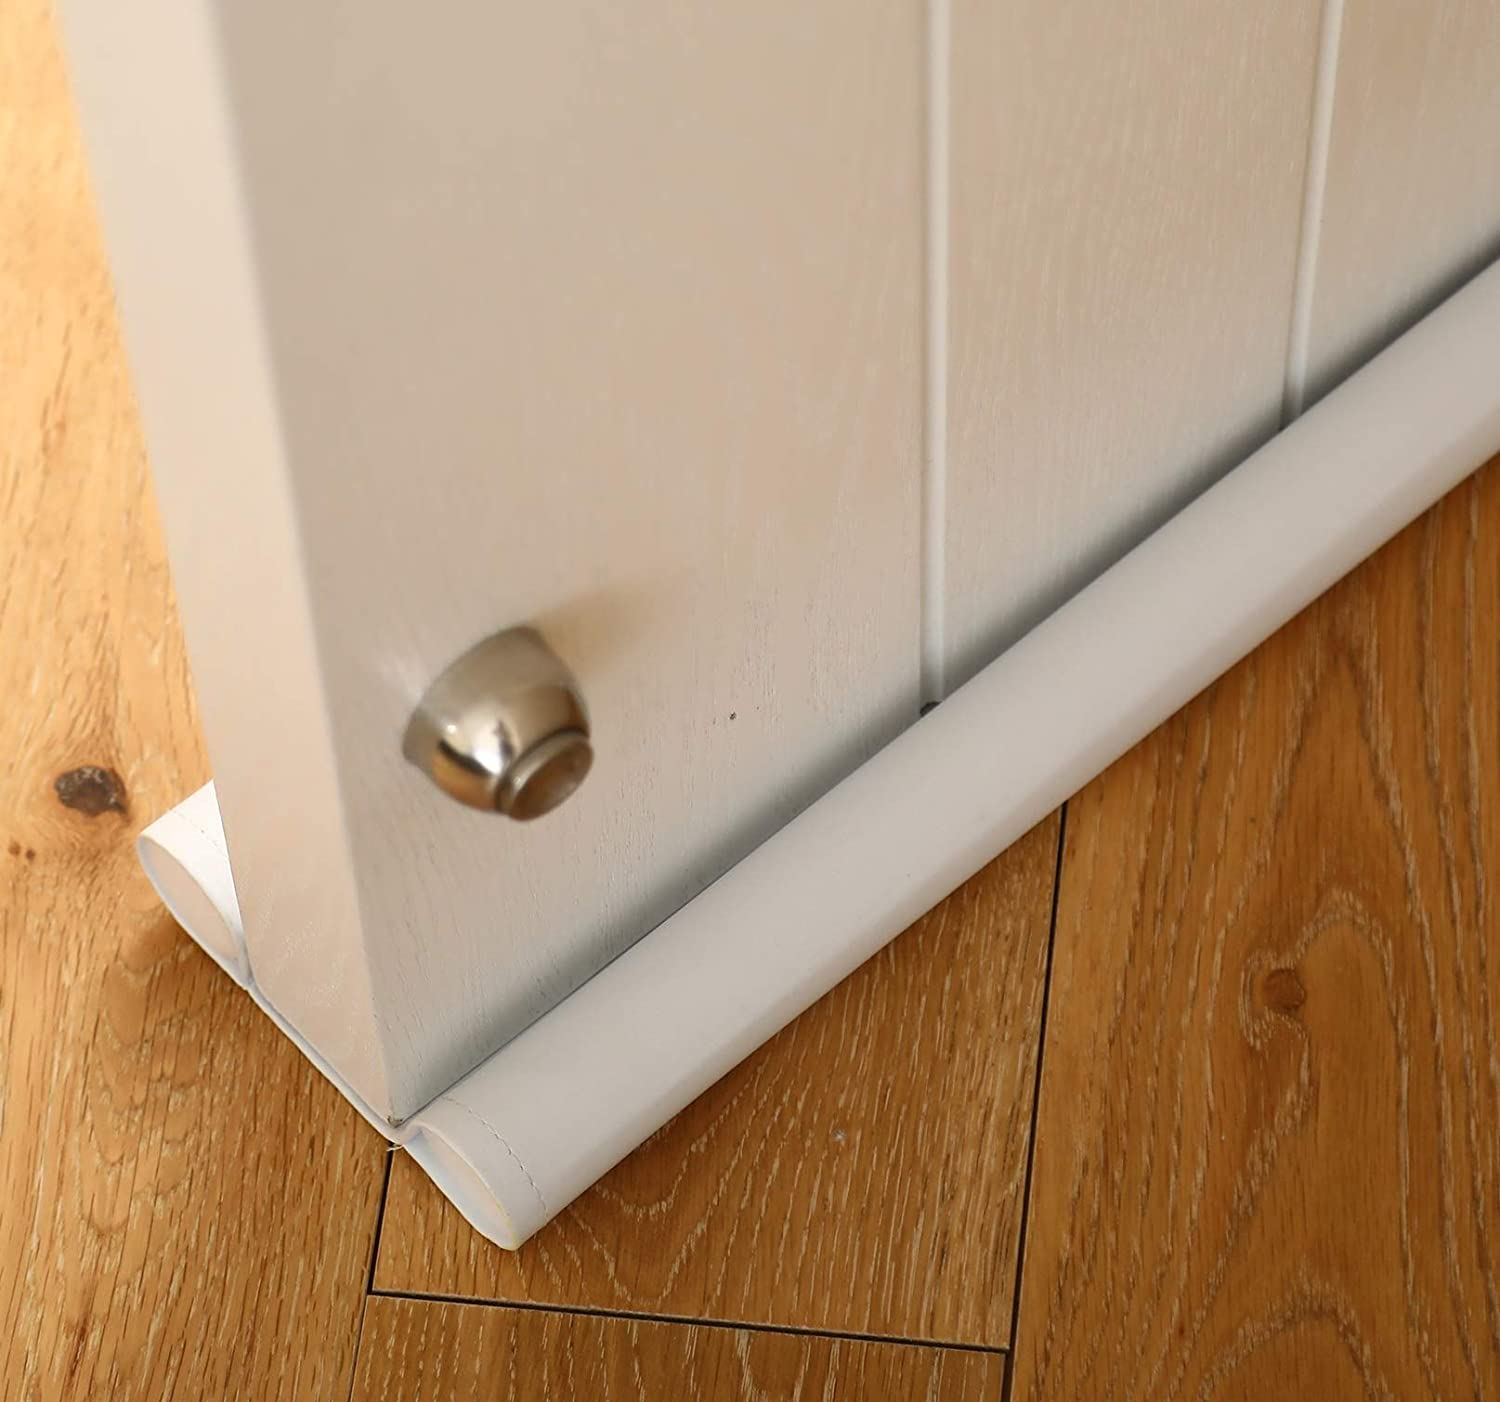 set of 2 Draught stopper for doors door seal. white can be cut to size double sided protection against draughts